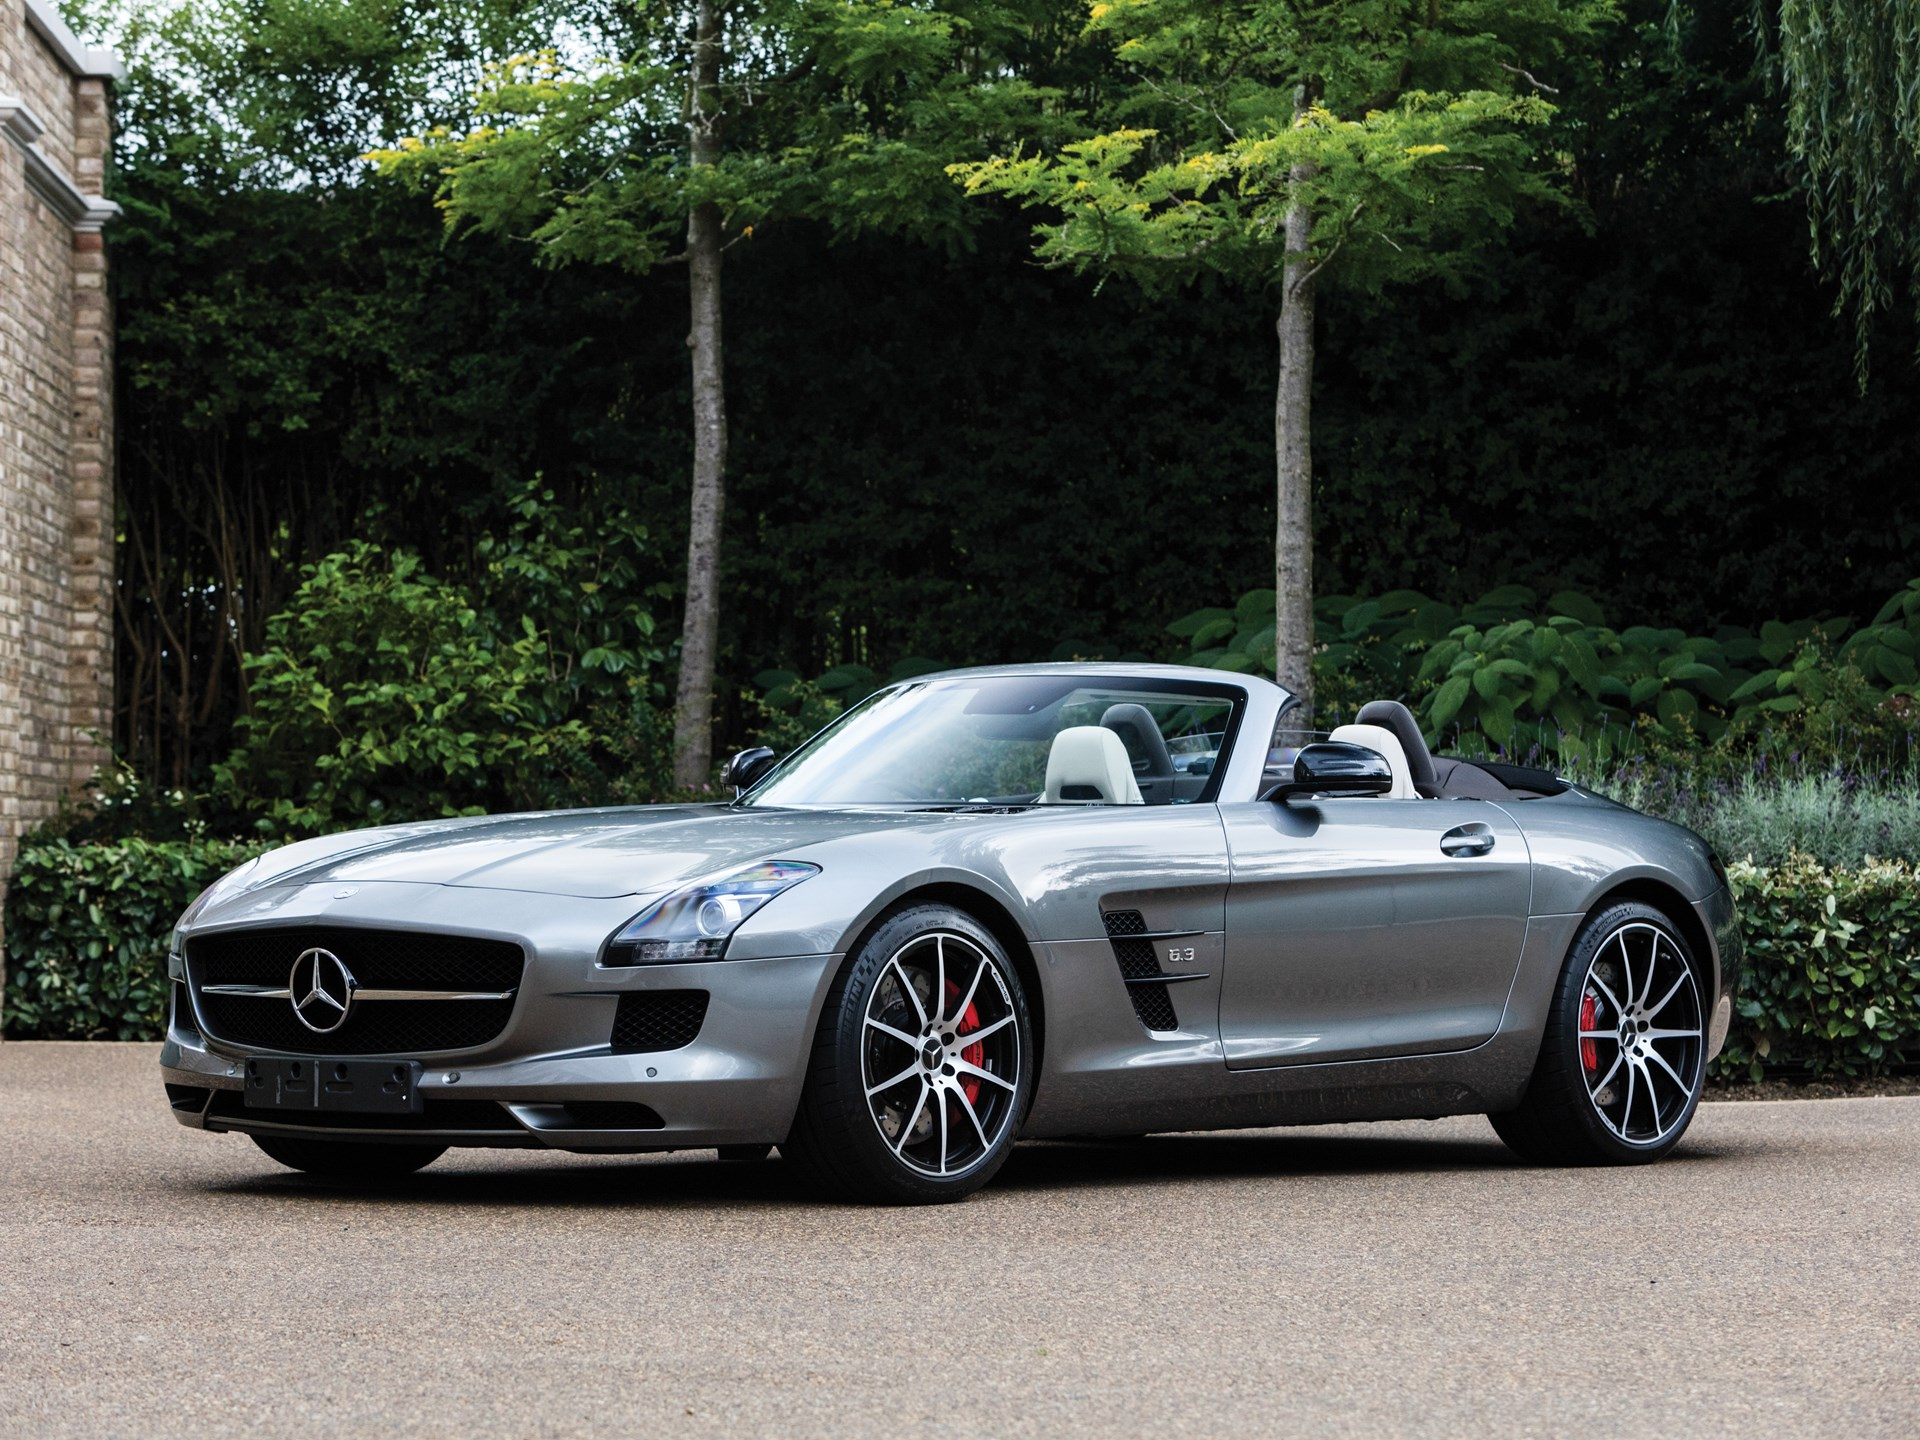 rm sotheby 39 s 2014 mercedes benz sls amg gt roadster. Black Bedroom Furniture Sets. Home Design Ideas